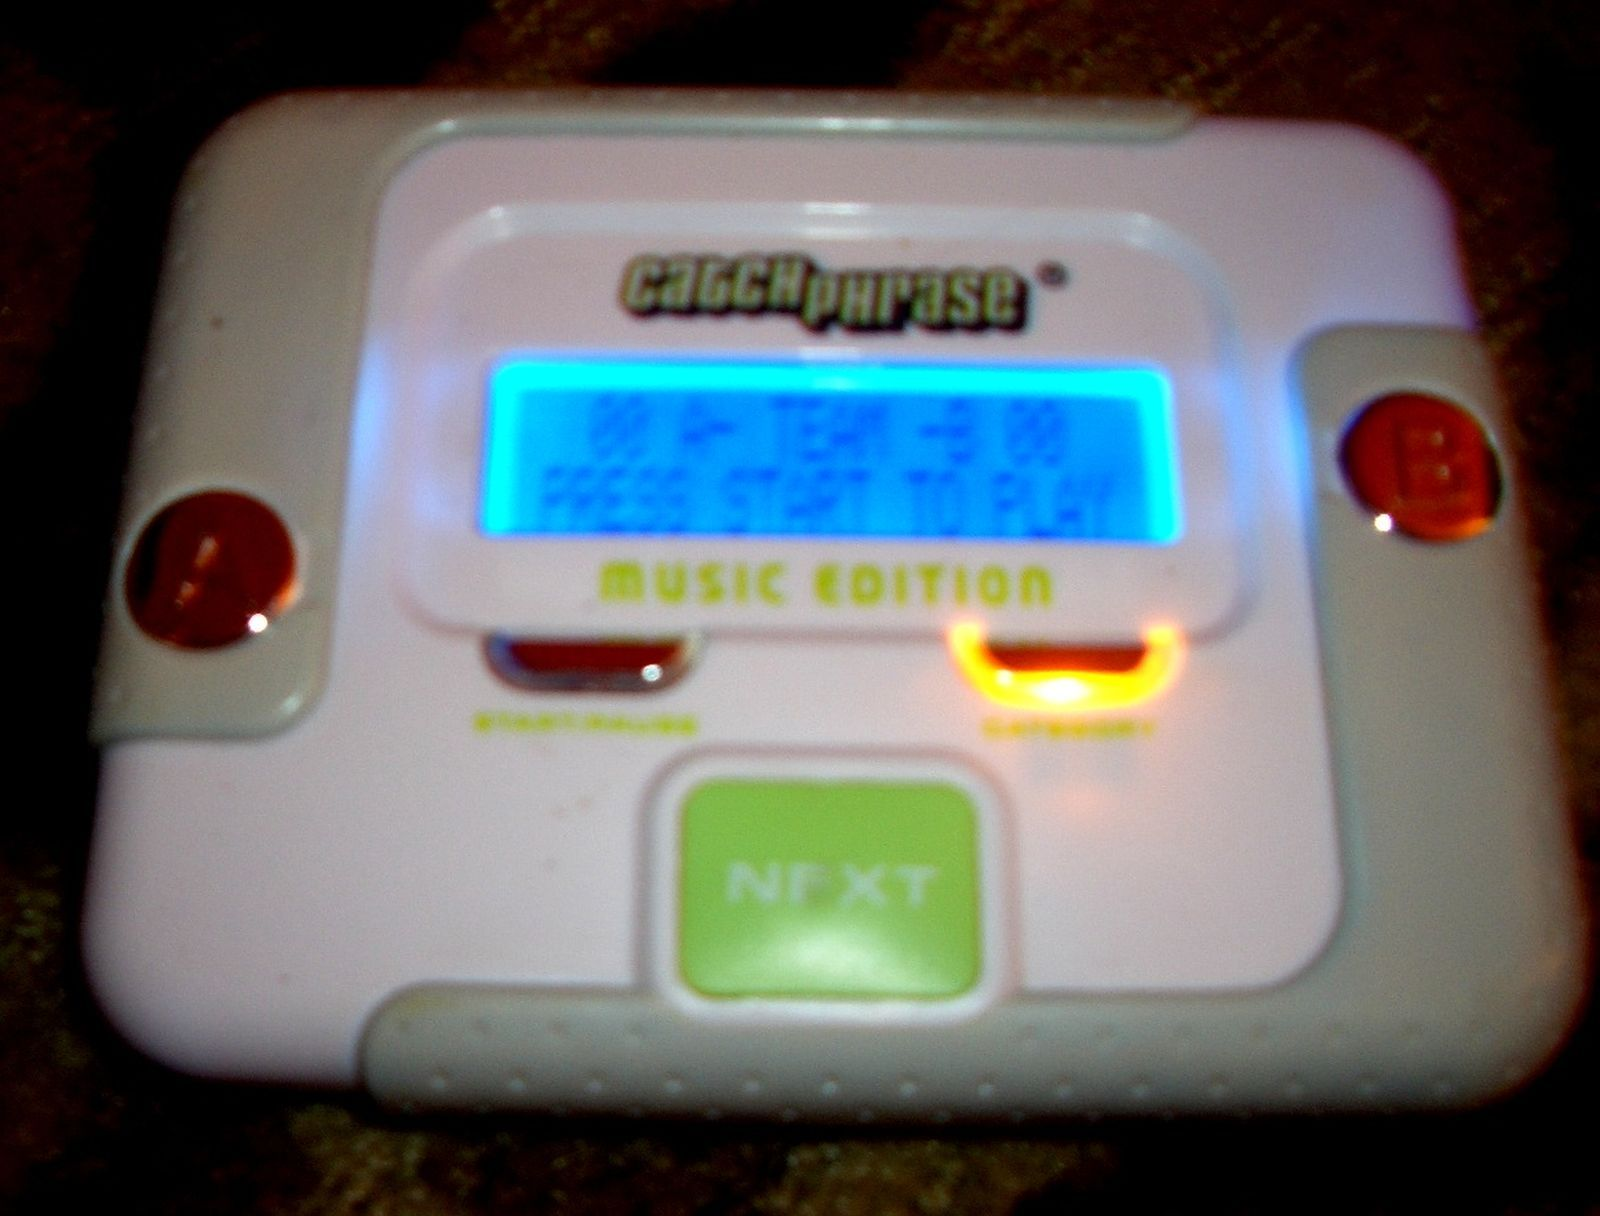 Catch phrase music edition handheld electronic game